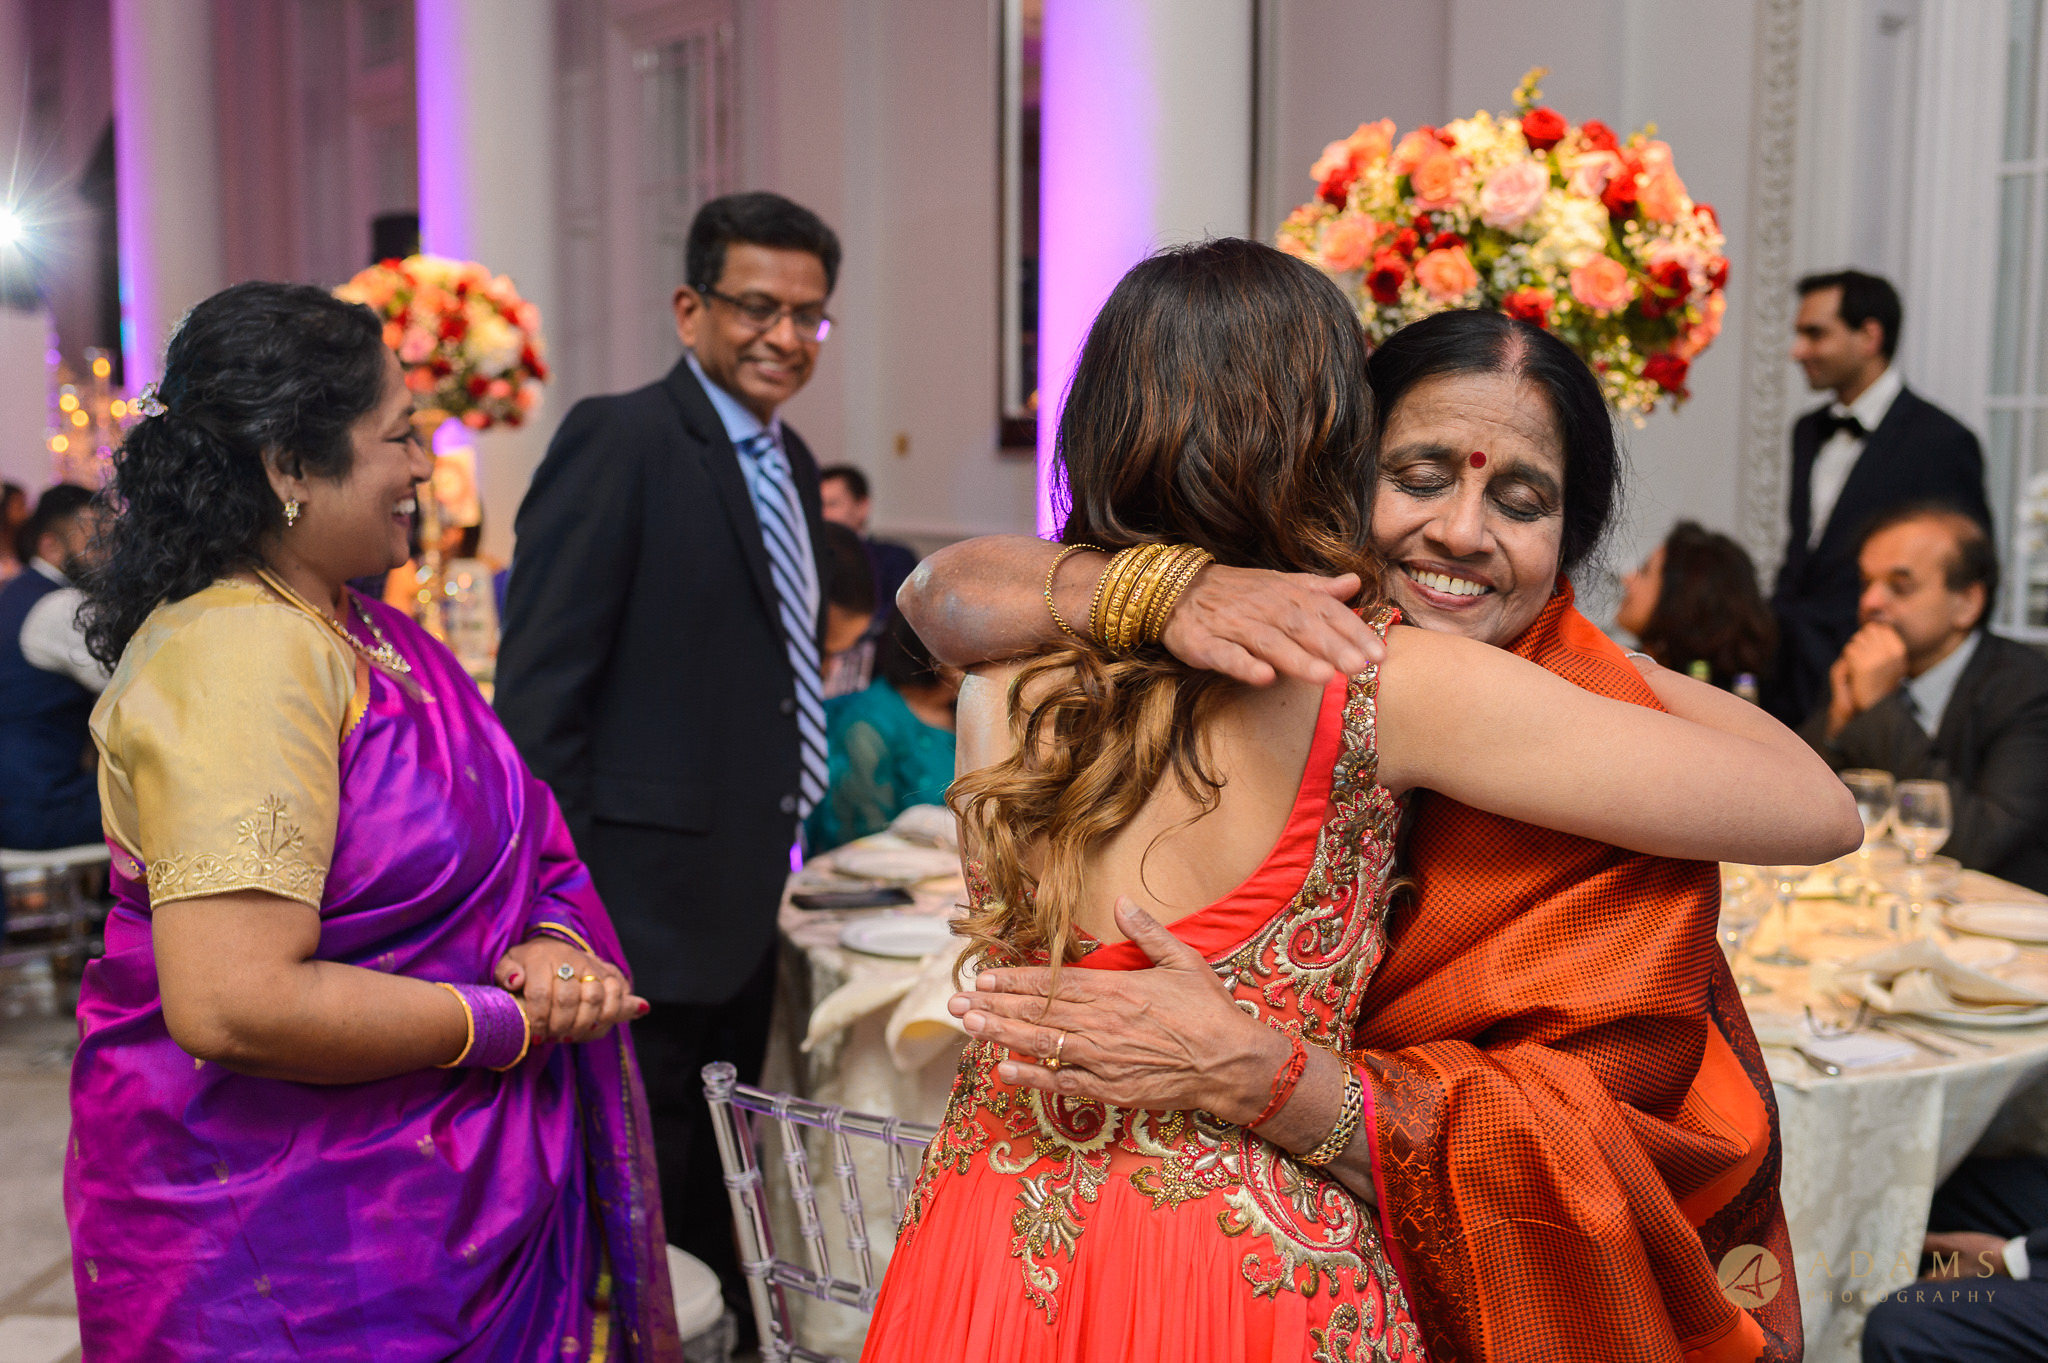 Mother of the groom is hugging the bride